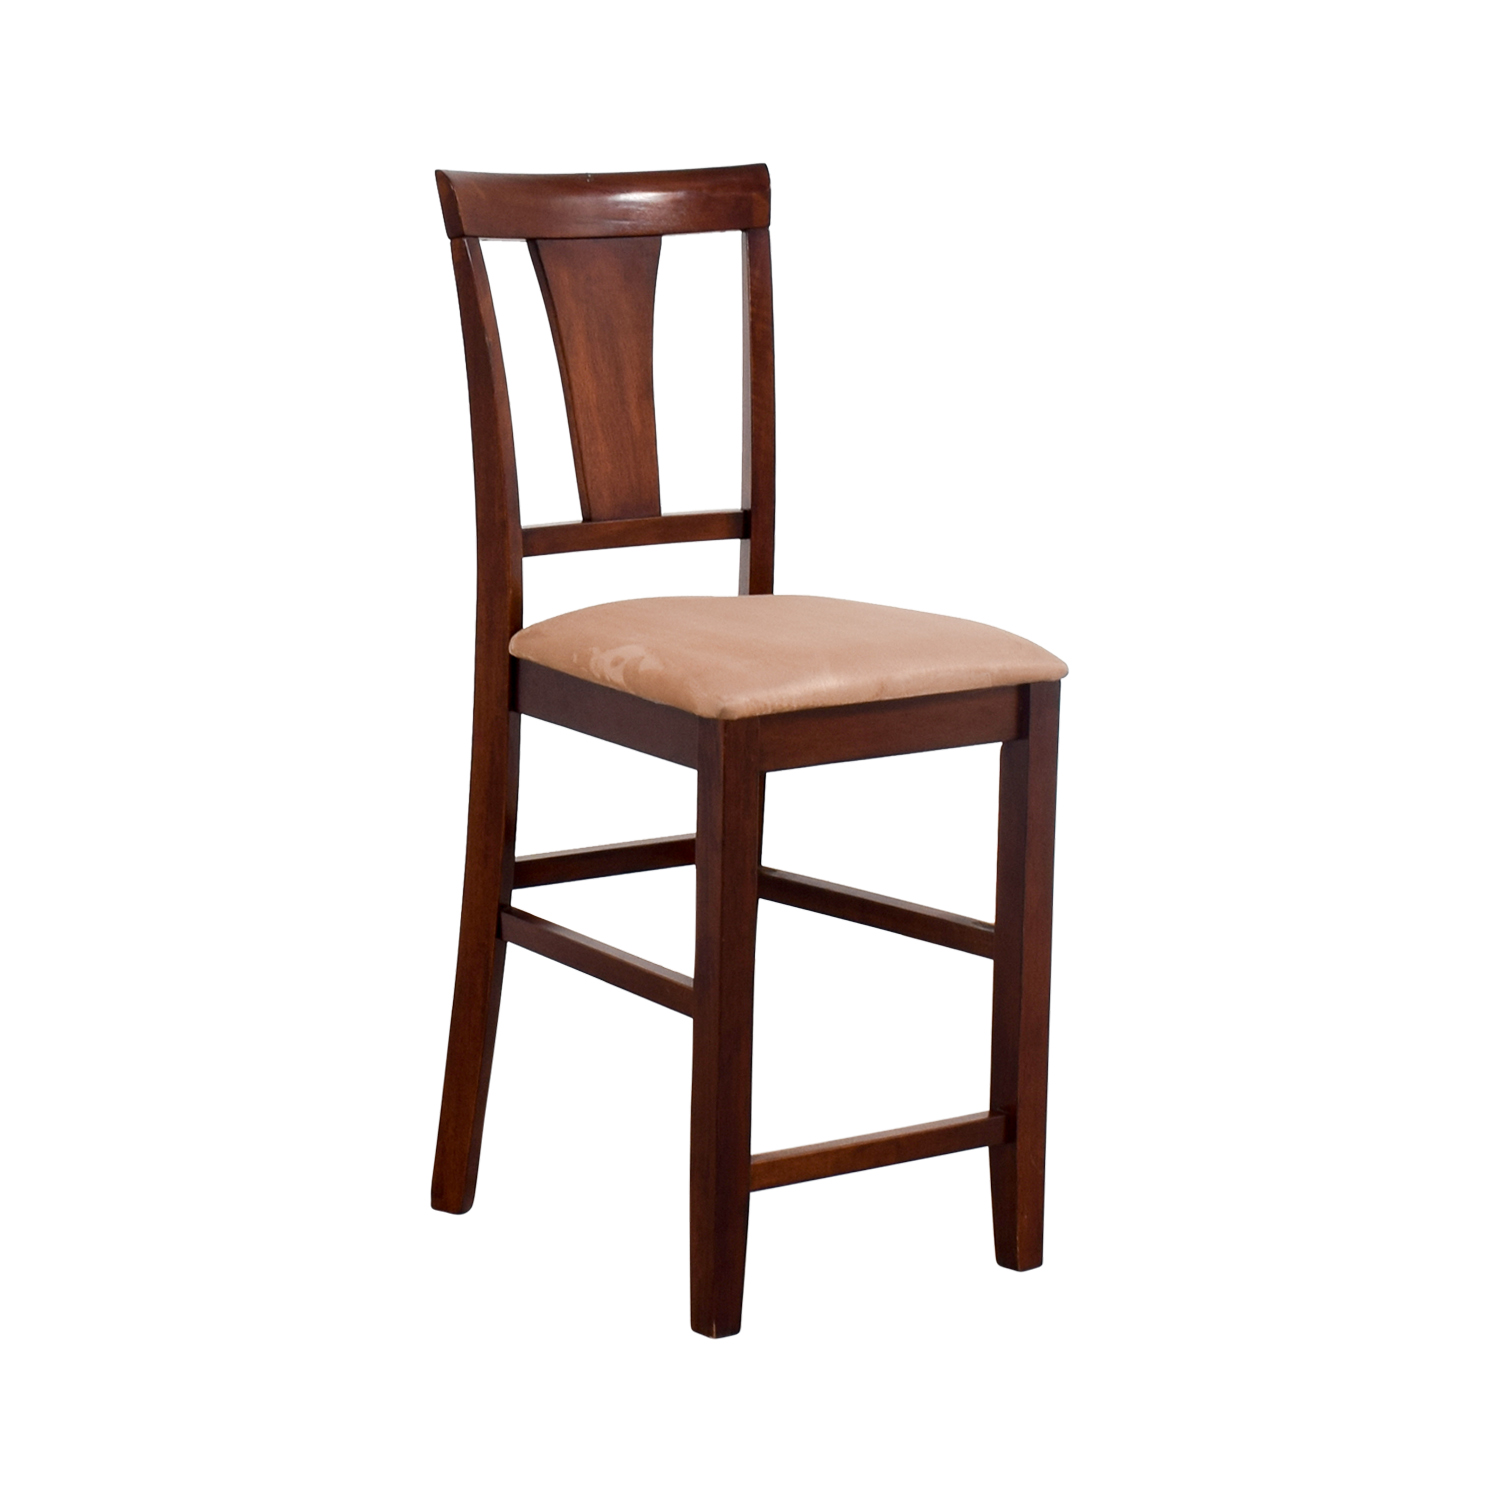 Light Cherry Wood Counter Height Chair with Padded Seat discount